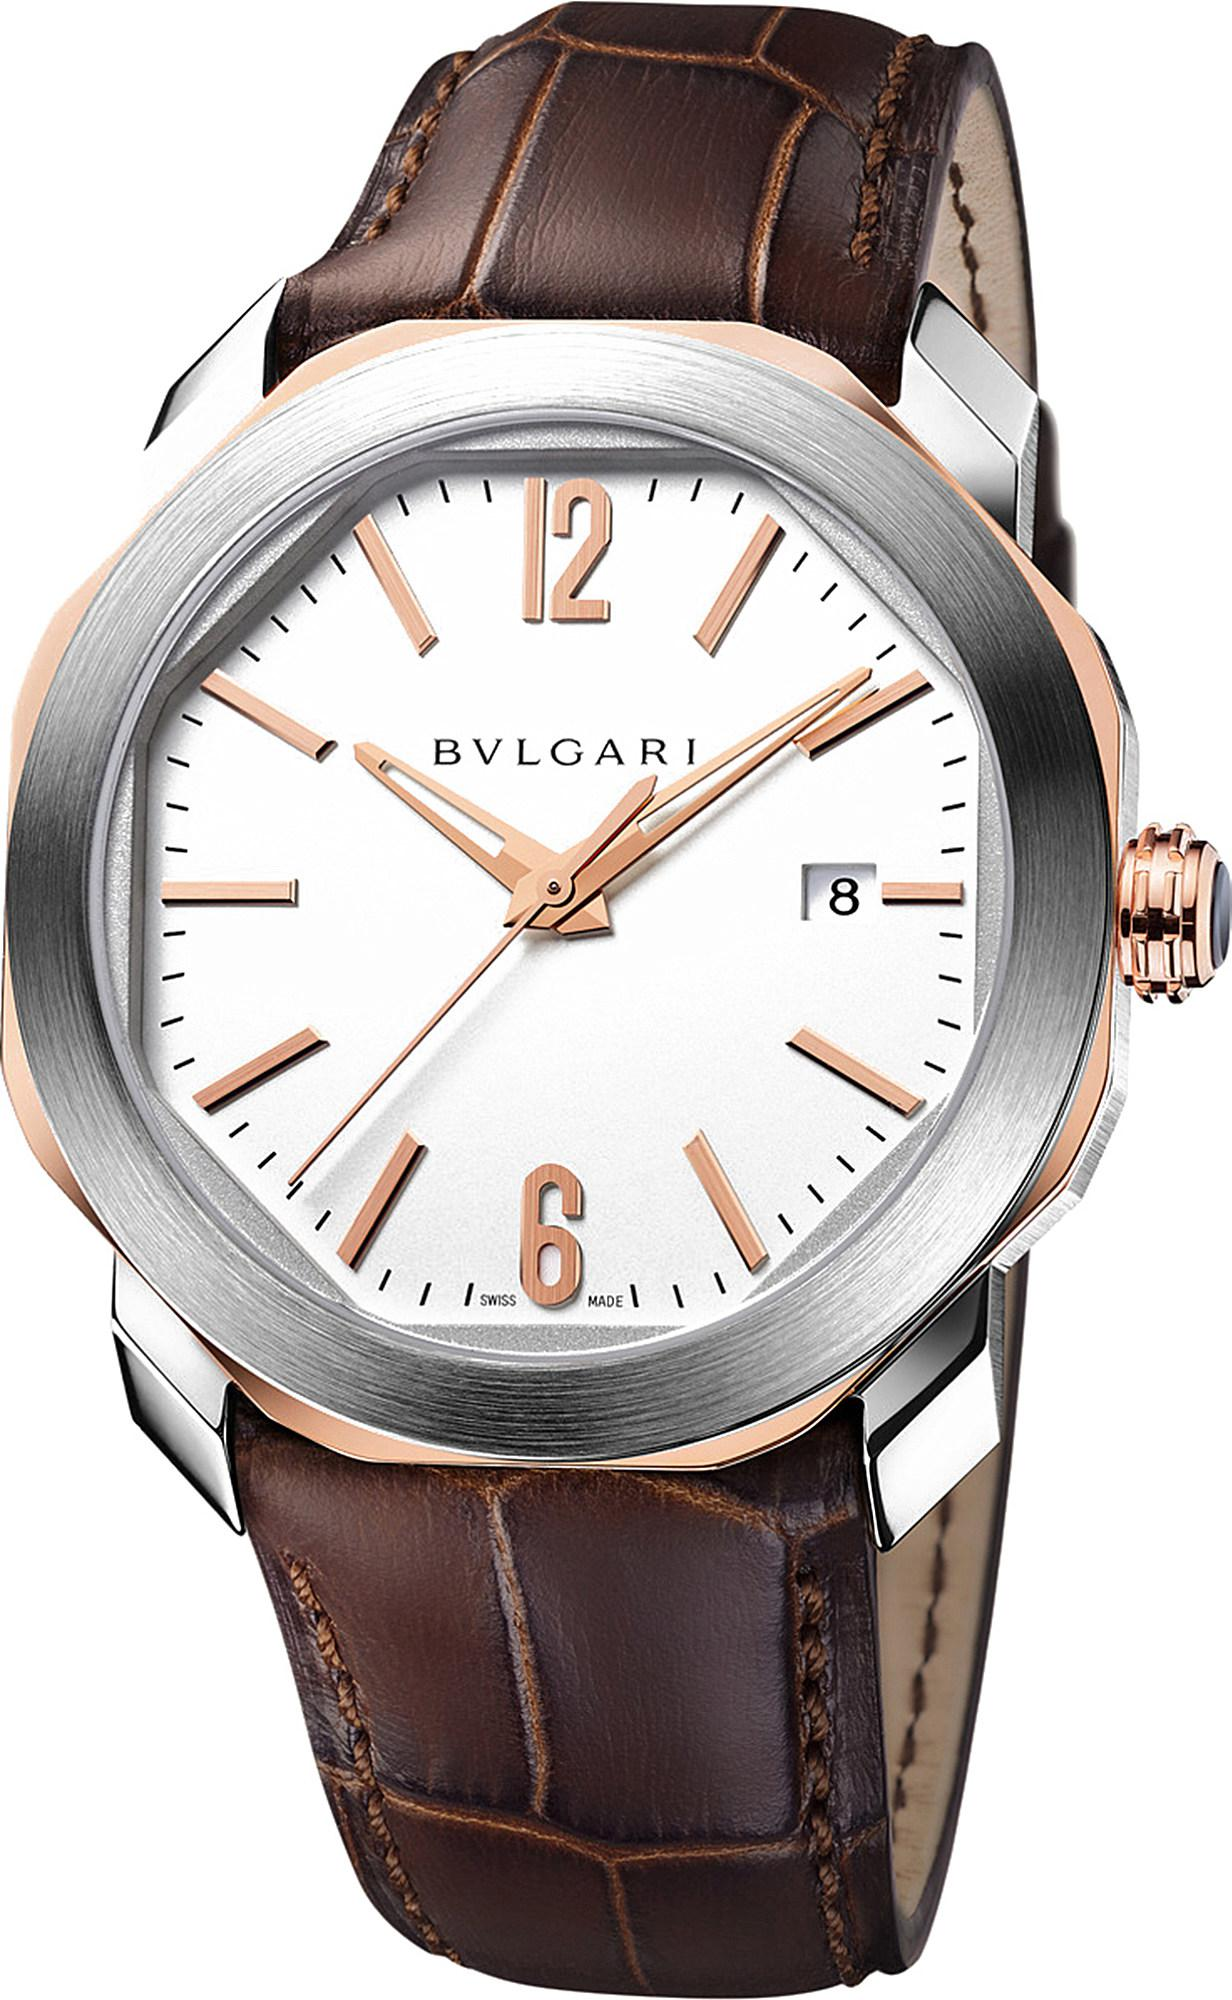 ee63e7f9cec BVLGARI - Metallic Octo 18ct Pink-gold And Leather Watch for Men - Lyst.  View fullscreen